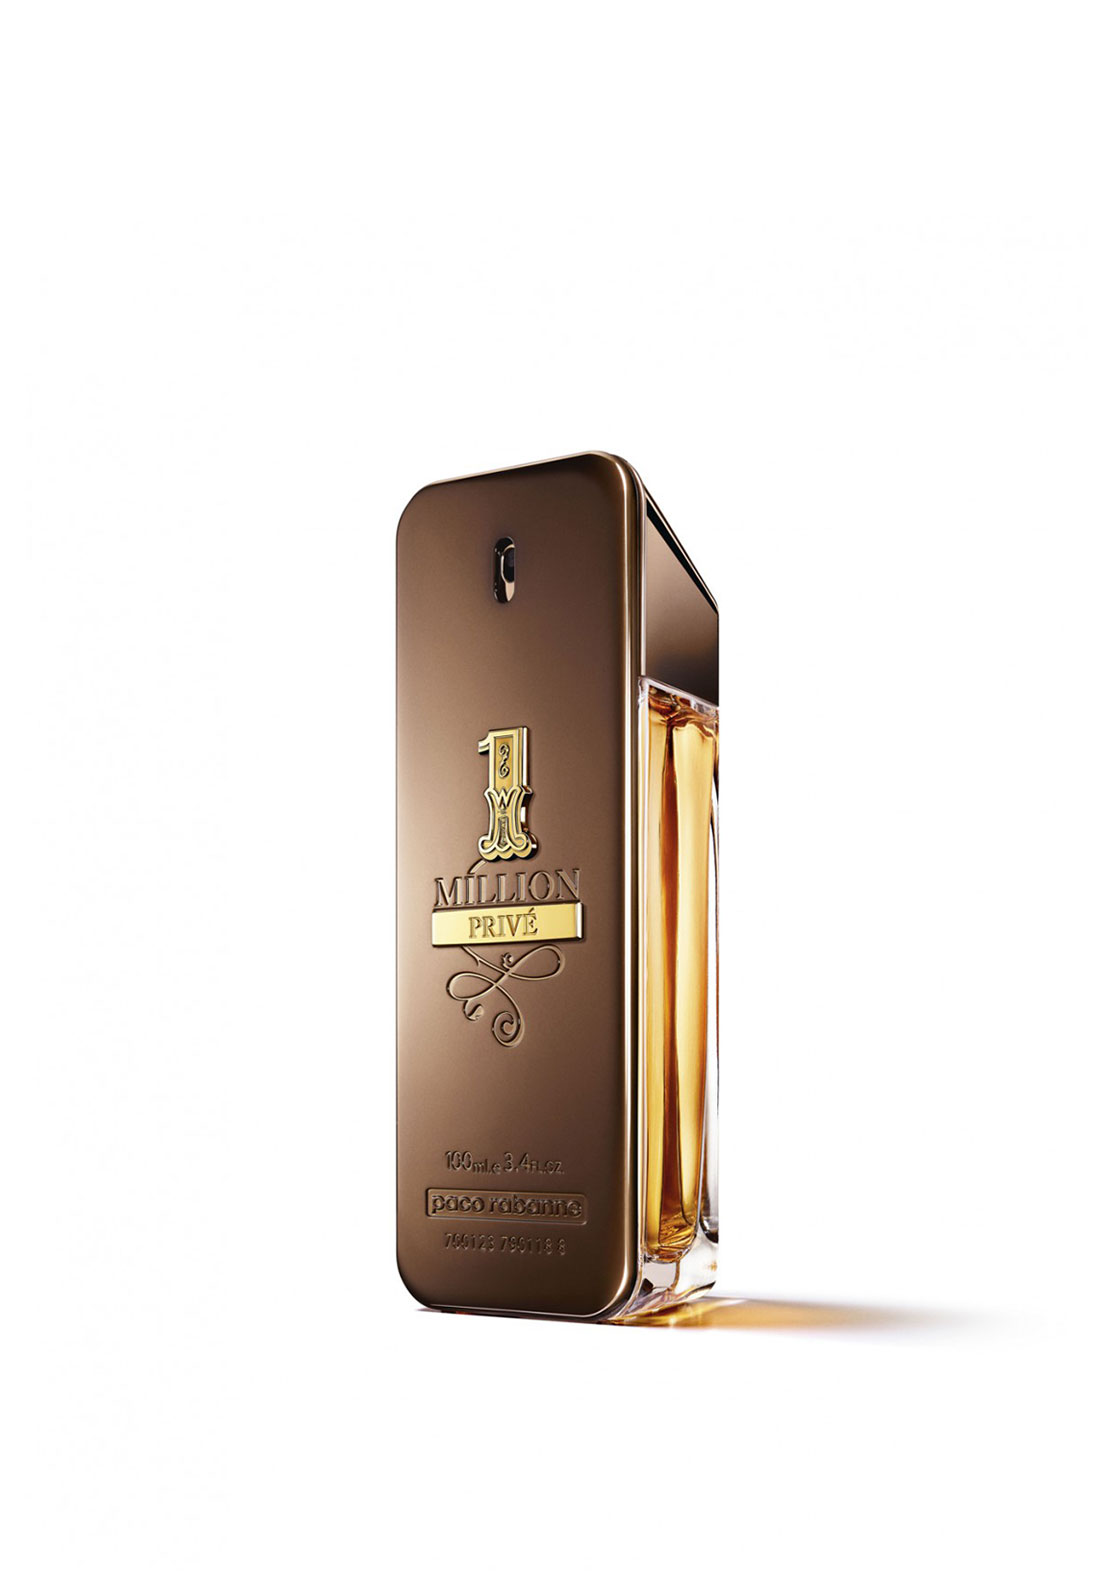 Paco Rabanne 1 Million Prive Eau de Parfum, 50ml